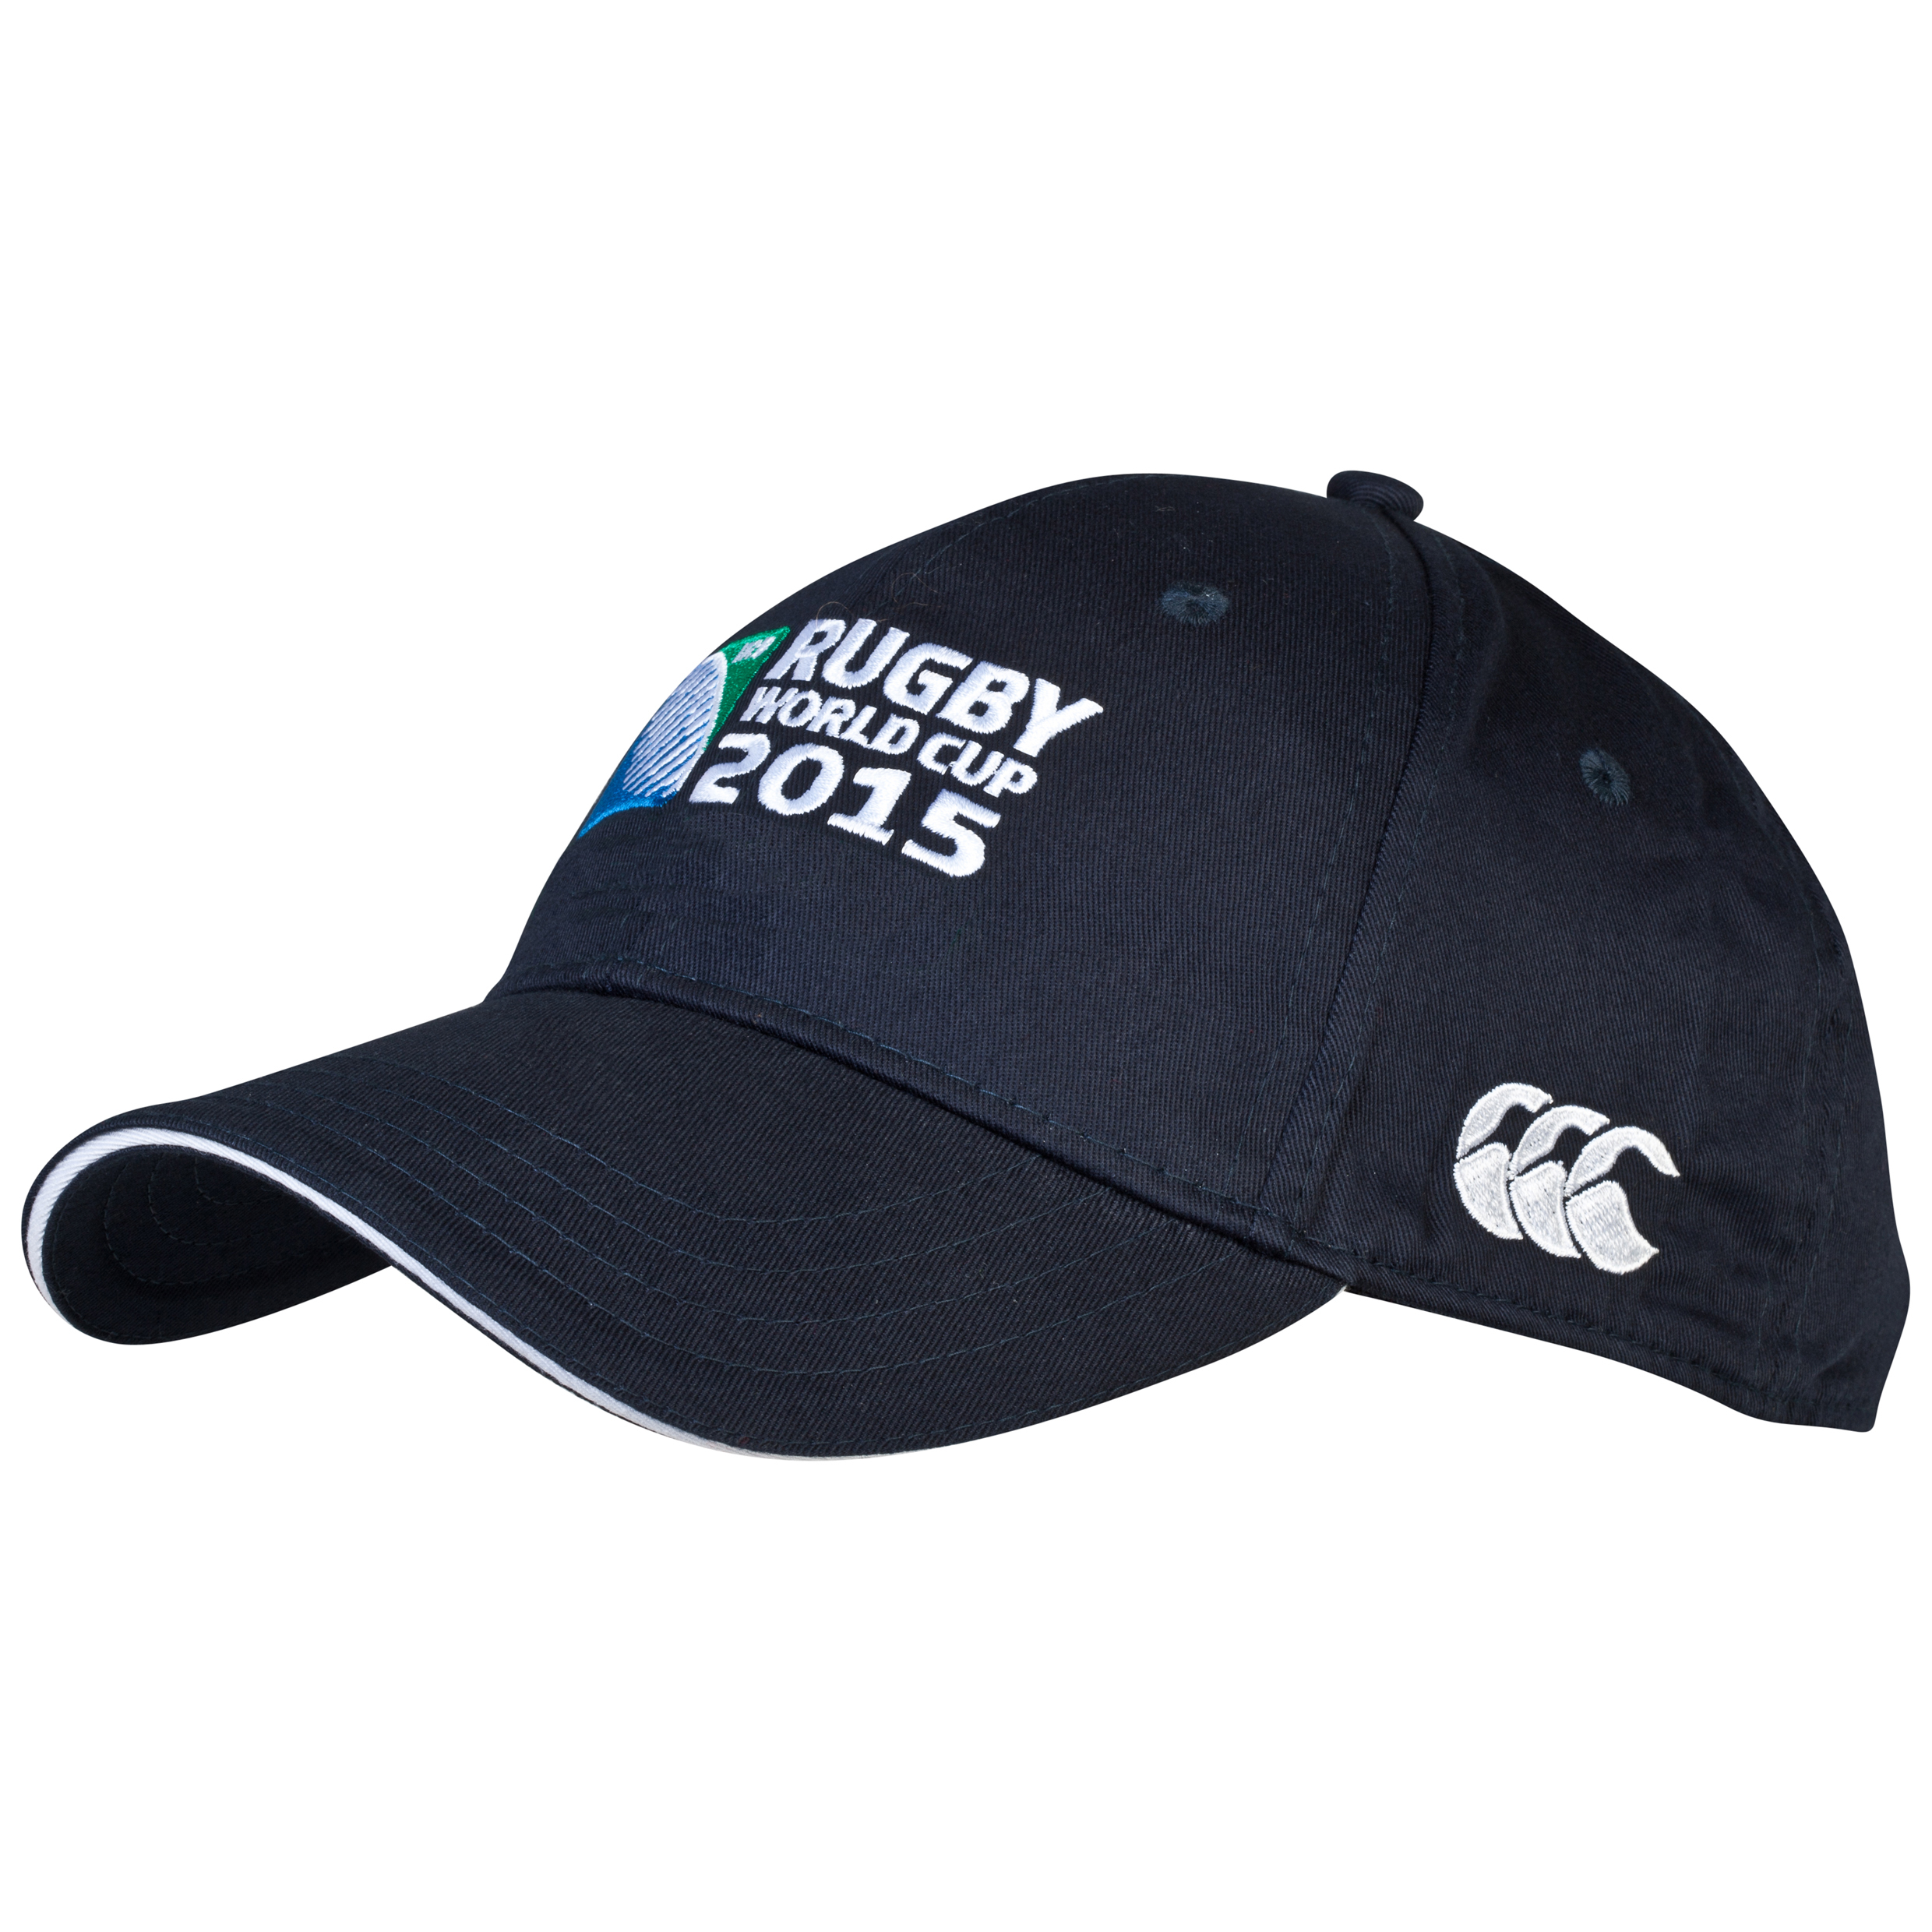 Canterbury Rugby World Cup 2015 Logo cap Navy